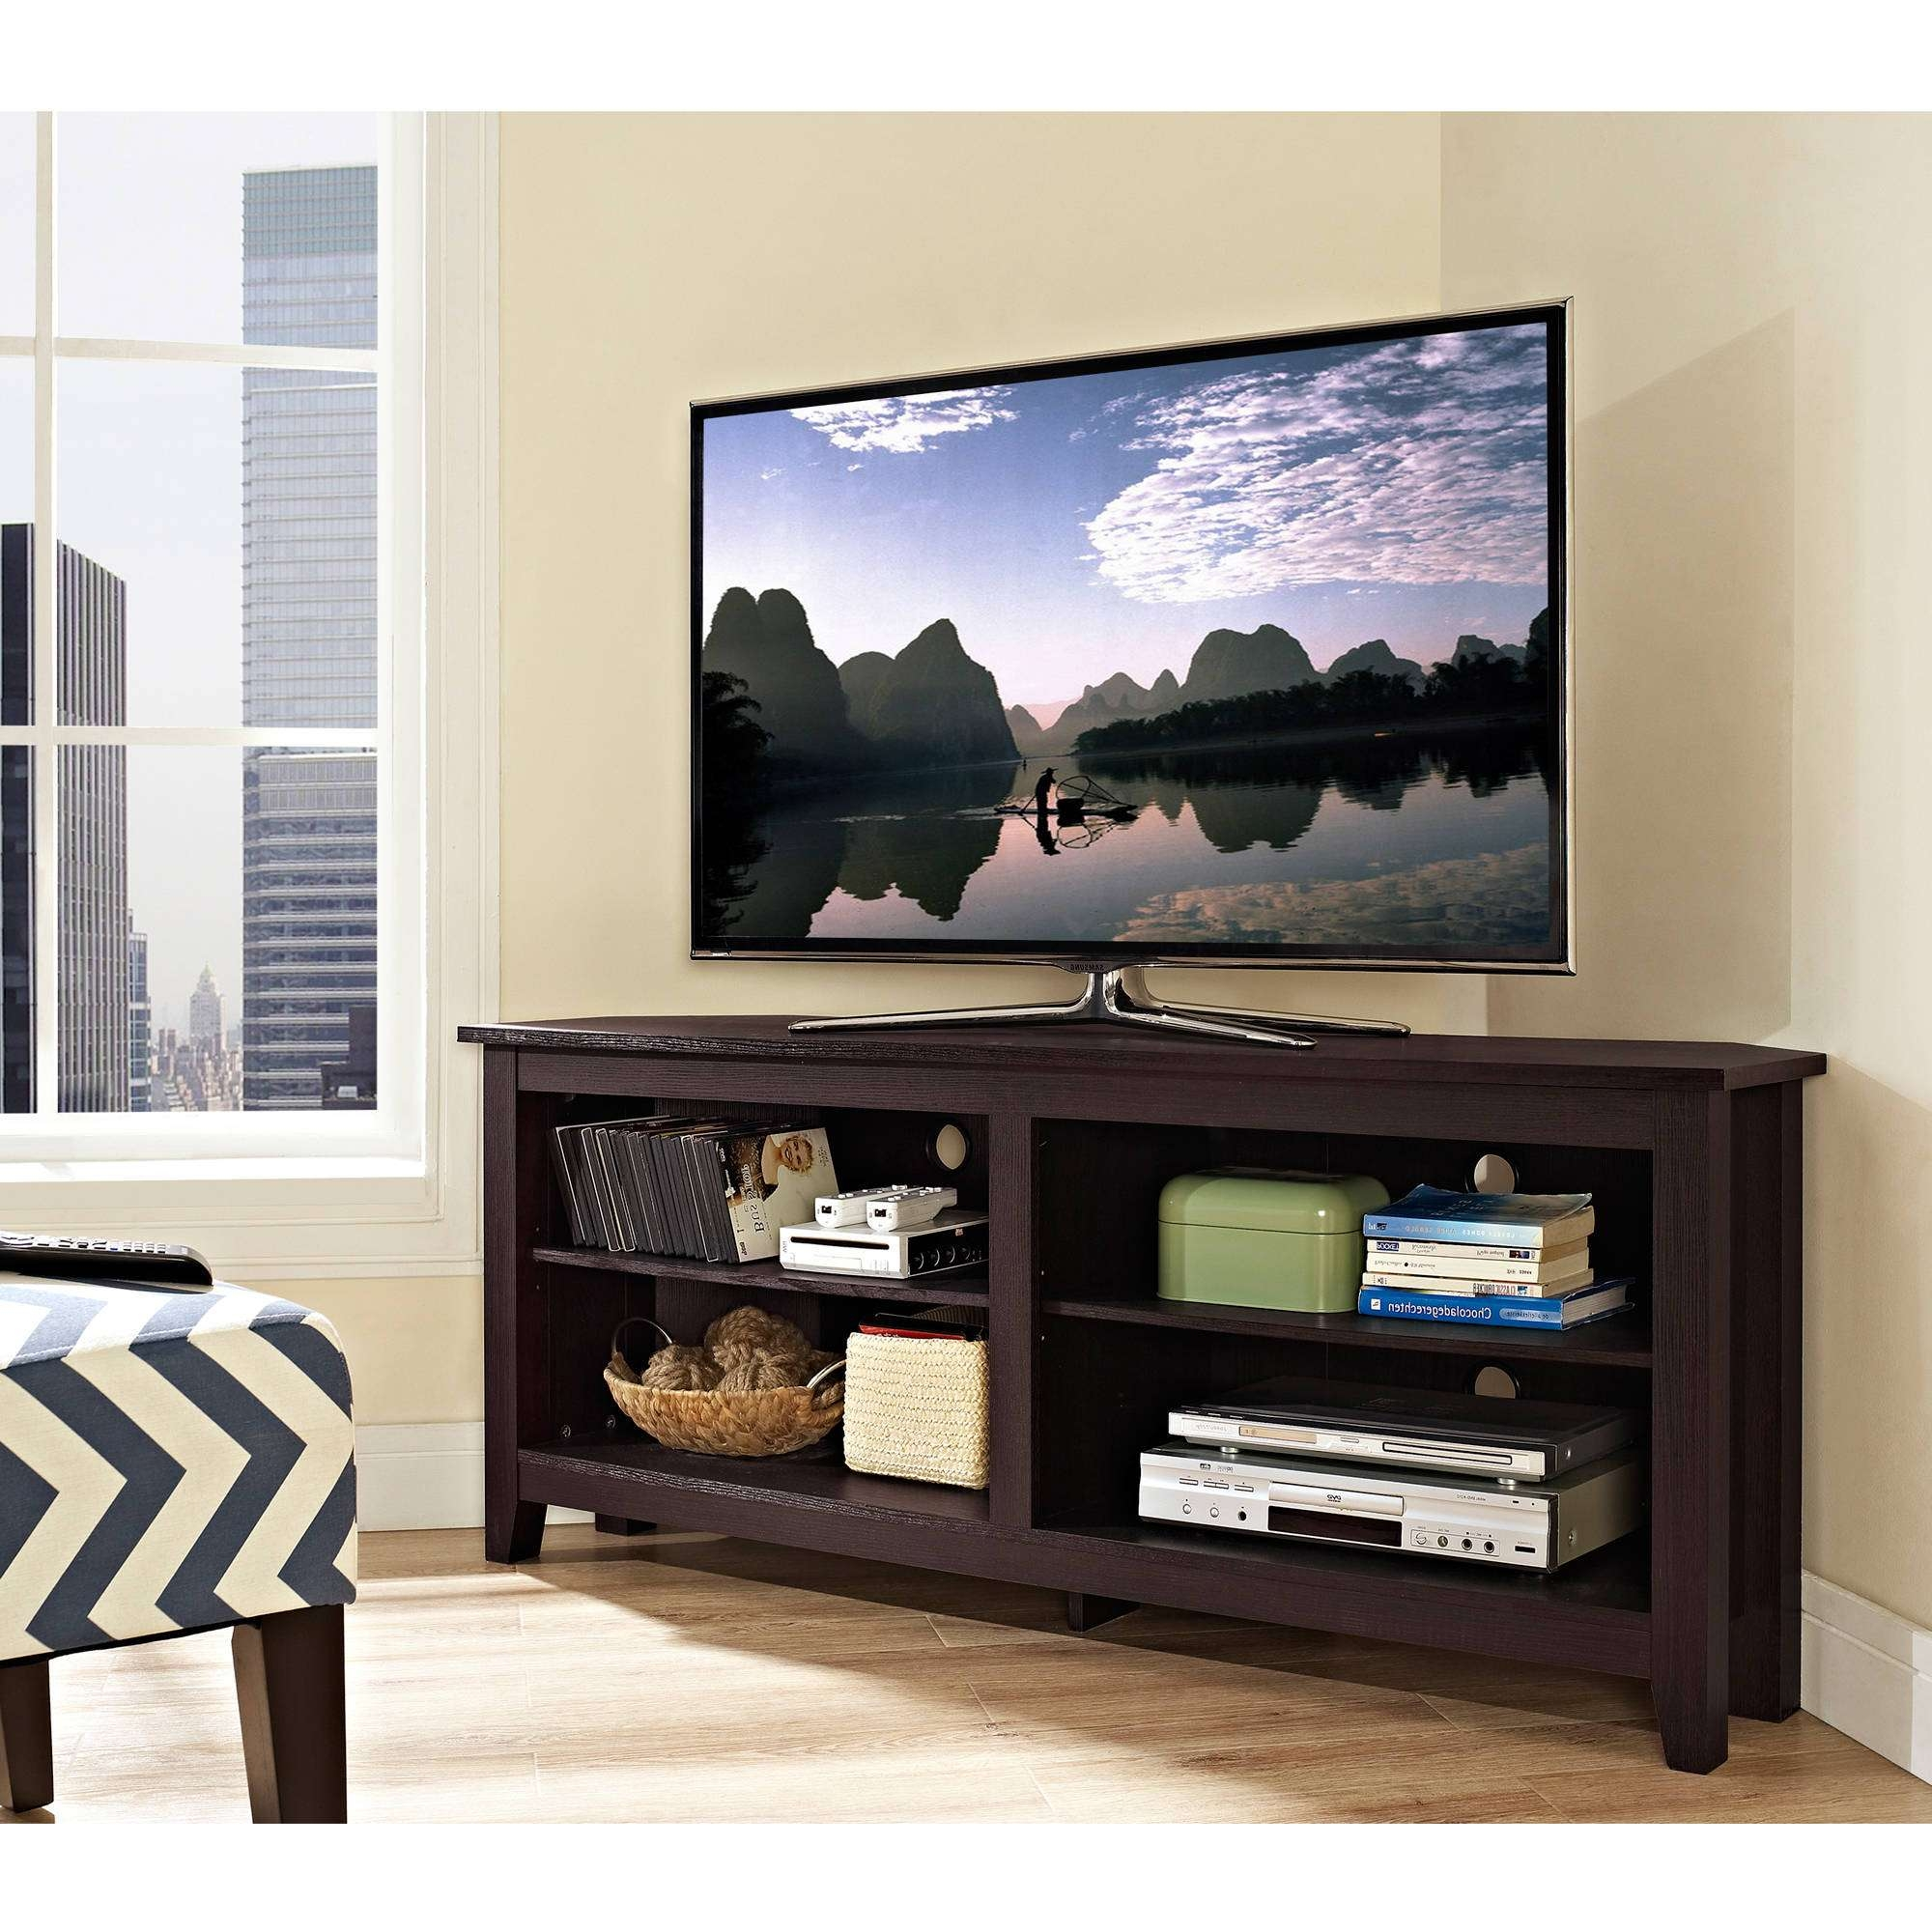 Tv Stand : Corner Tv Stand Wood Cherry Haydenwoodhaven Throughout Black Corner Tv Stands For Tvs Up To (View 3 of 20)